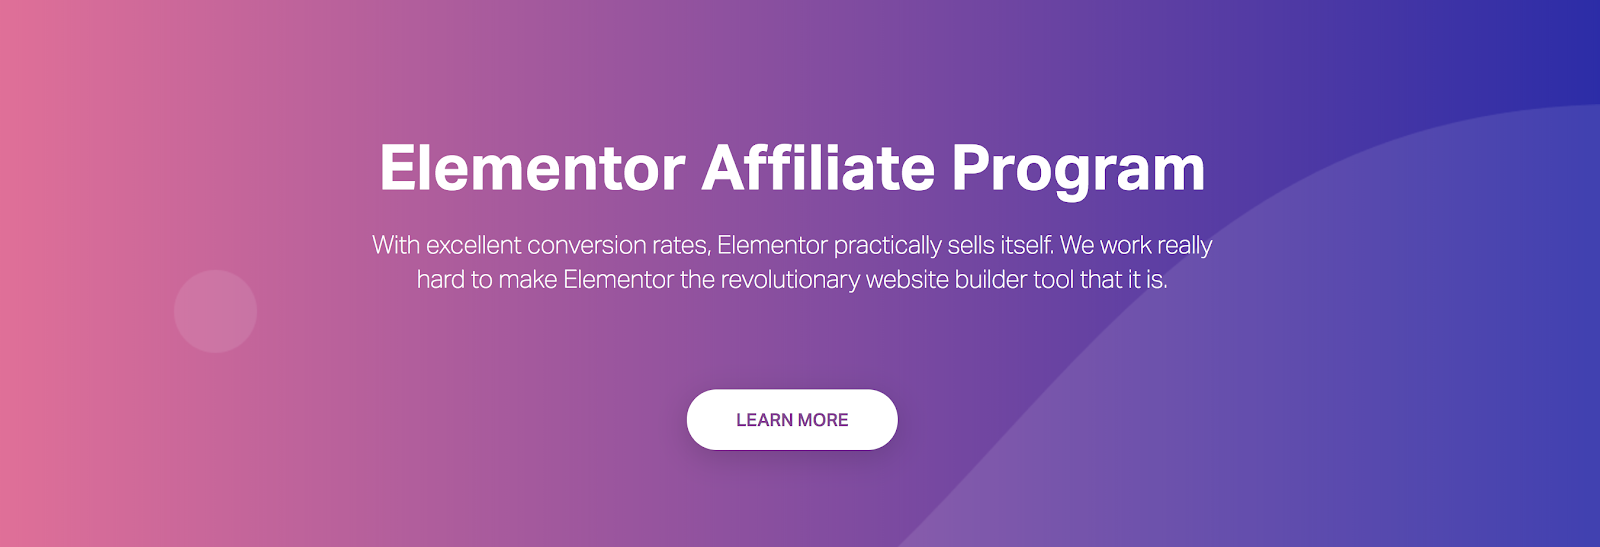 Elementor WordPress Theme Affiliate Program Page Screenshot